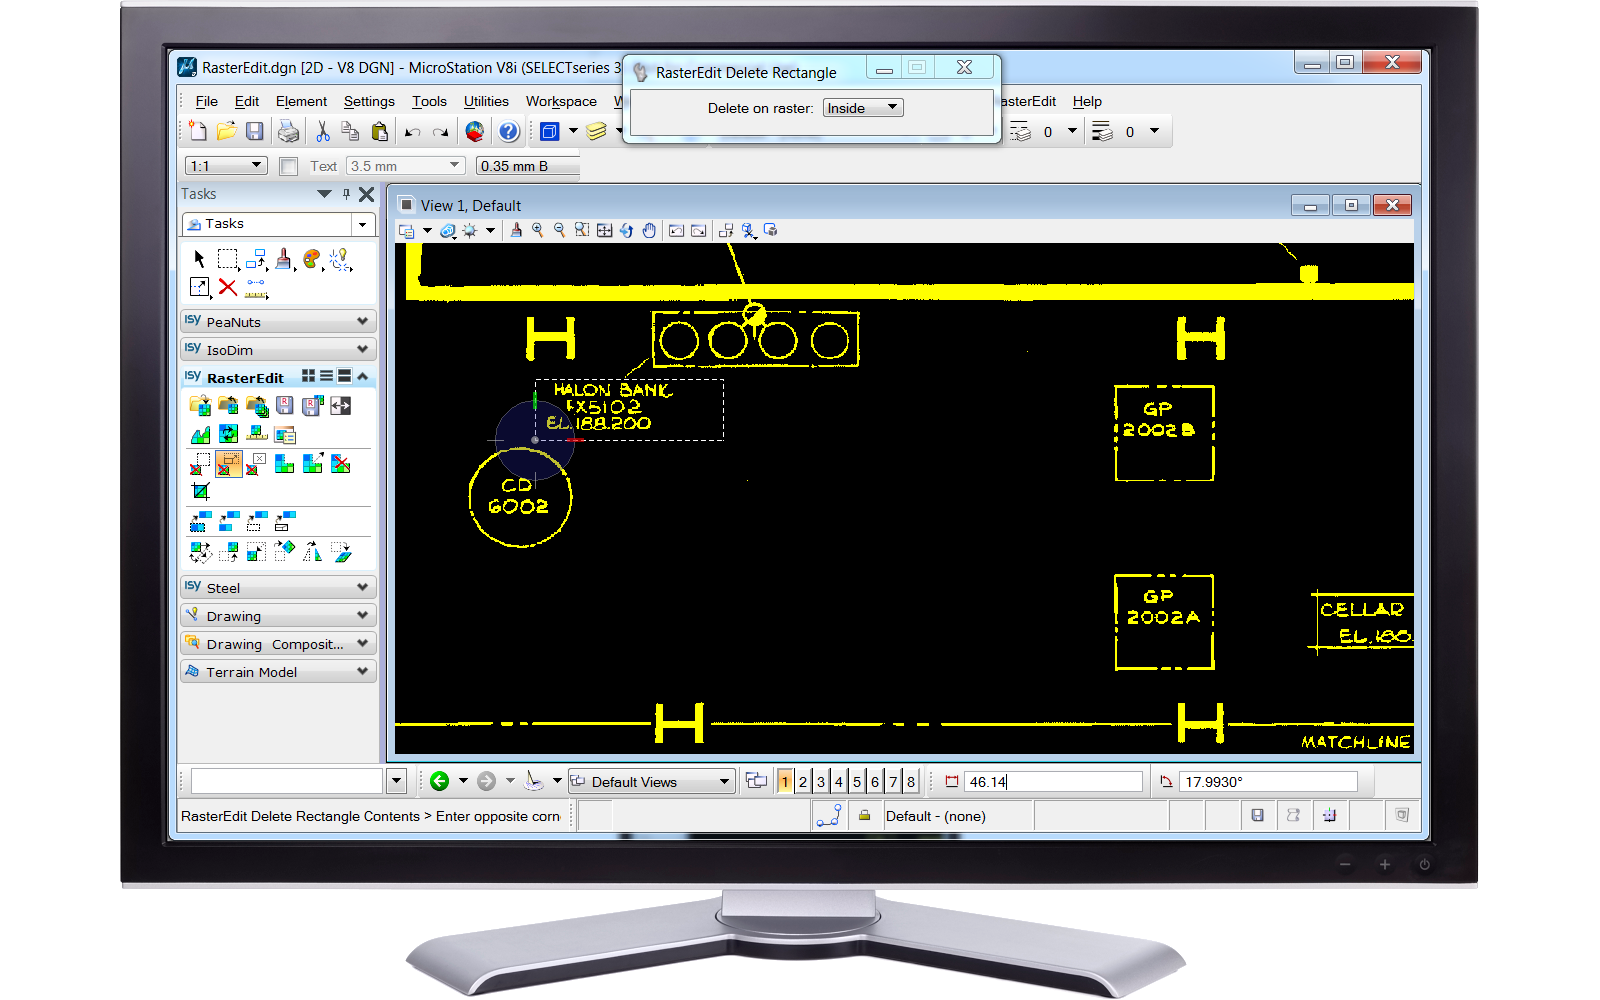 Products isy cad for microstation norconsult for Copy cad